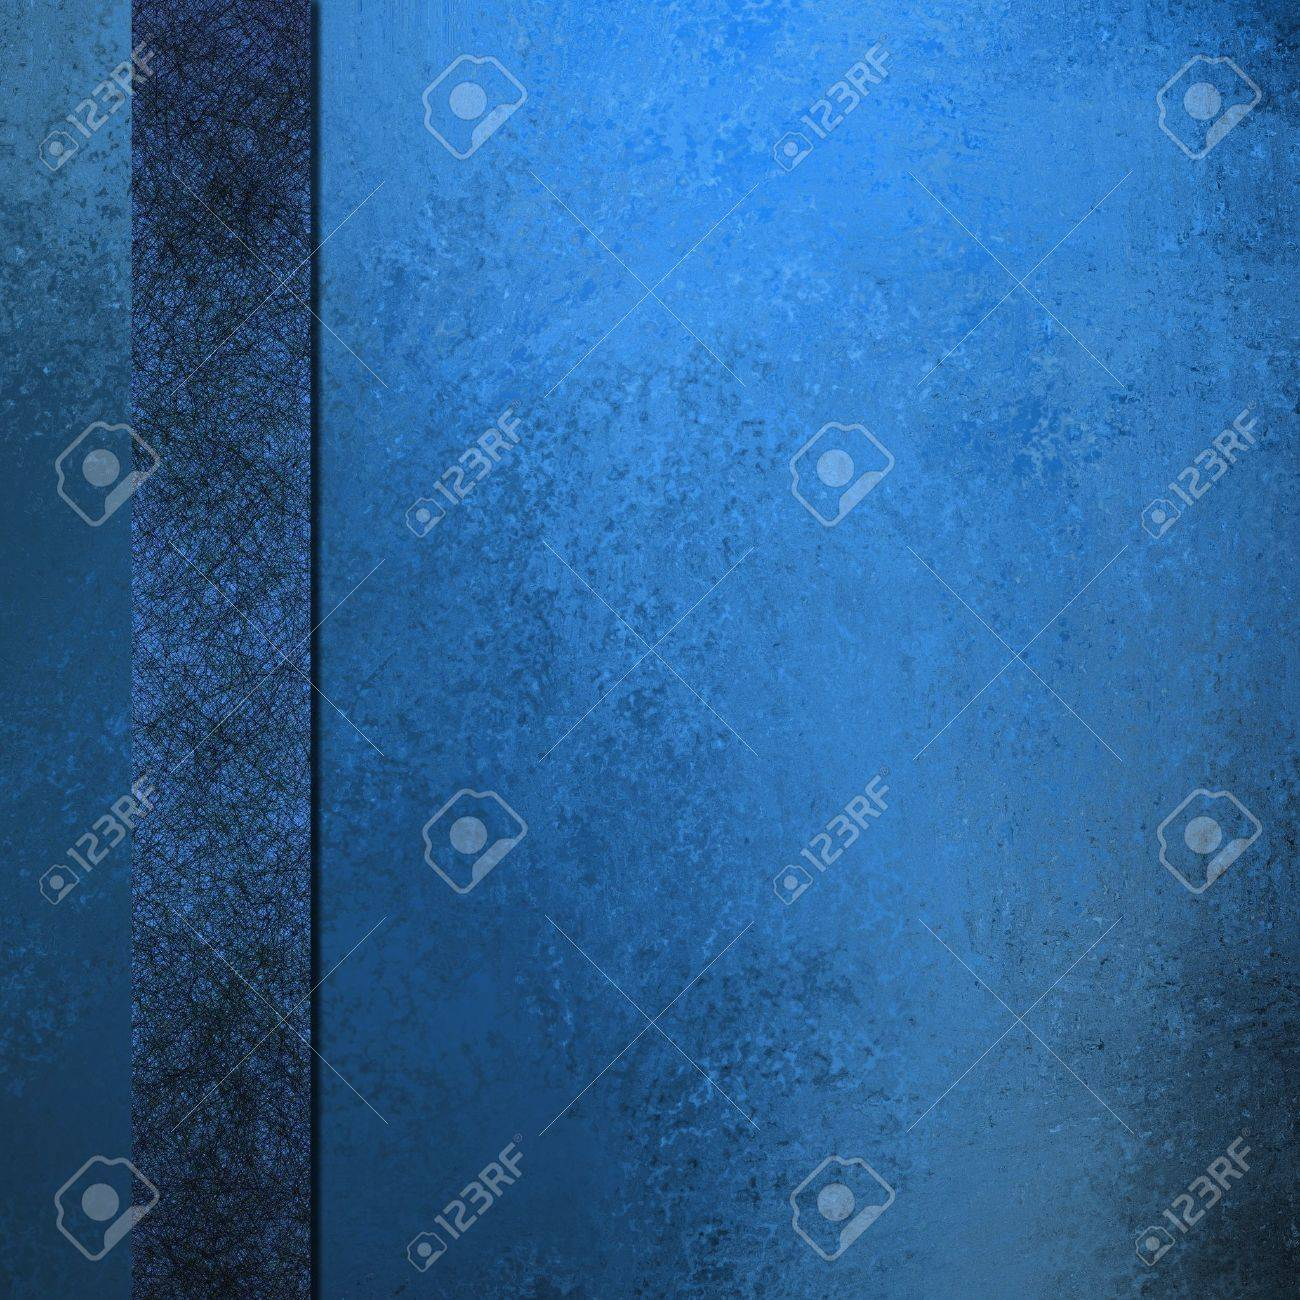 old blue background elegant layout with dark black and blue ribbon stripe down border frame for book cover design or brochure or web template, has vintage grunge background texture design faded color Stock Photo - 14674422